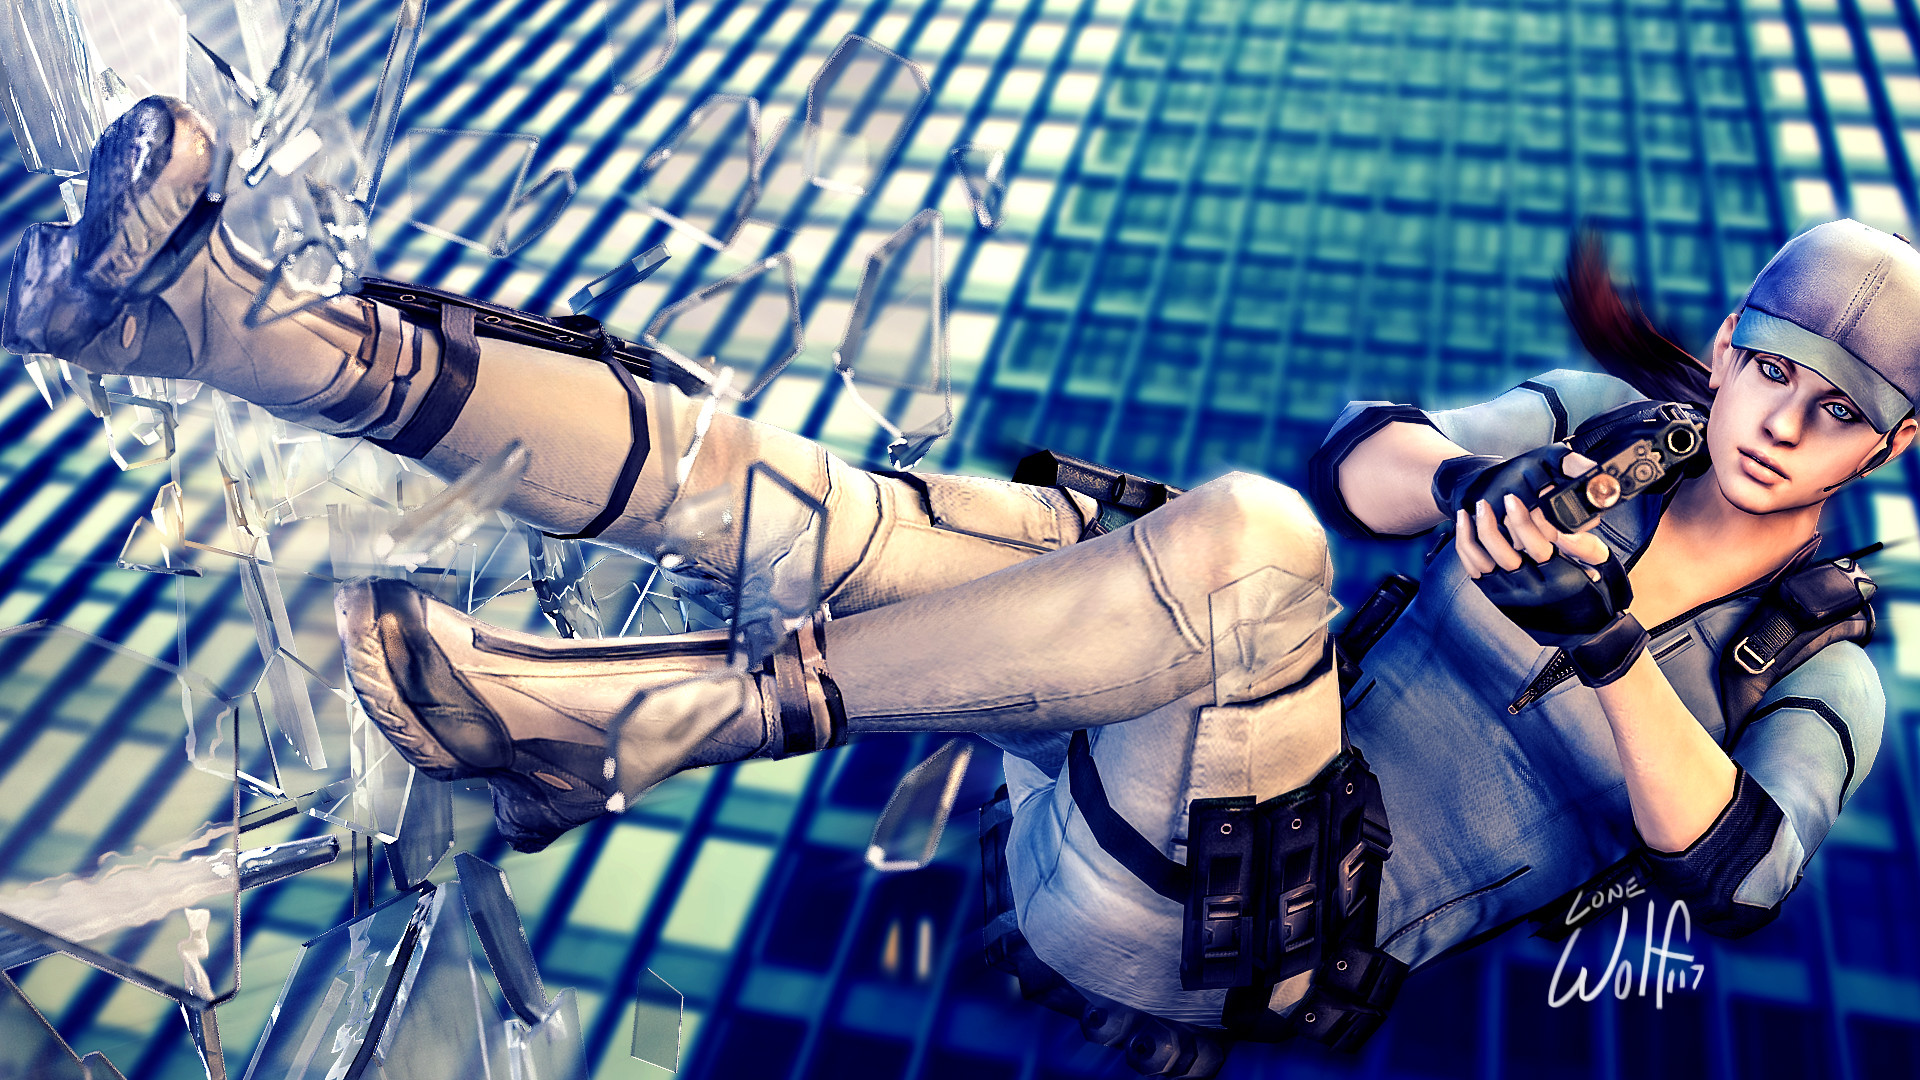 Jill reminds me that you can't live life taking the easy path. I just hope  that path doesn't lead me out a window like her. Jill Valentine: Leap of  Faith